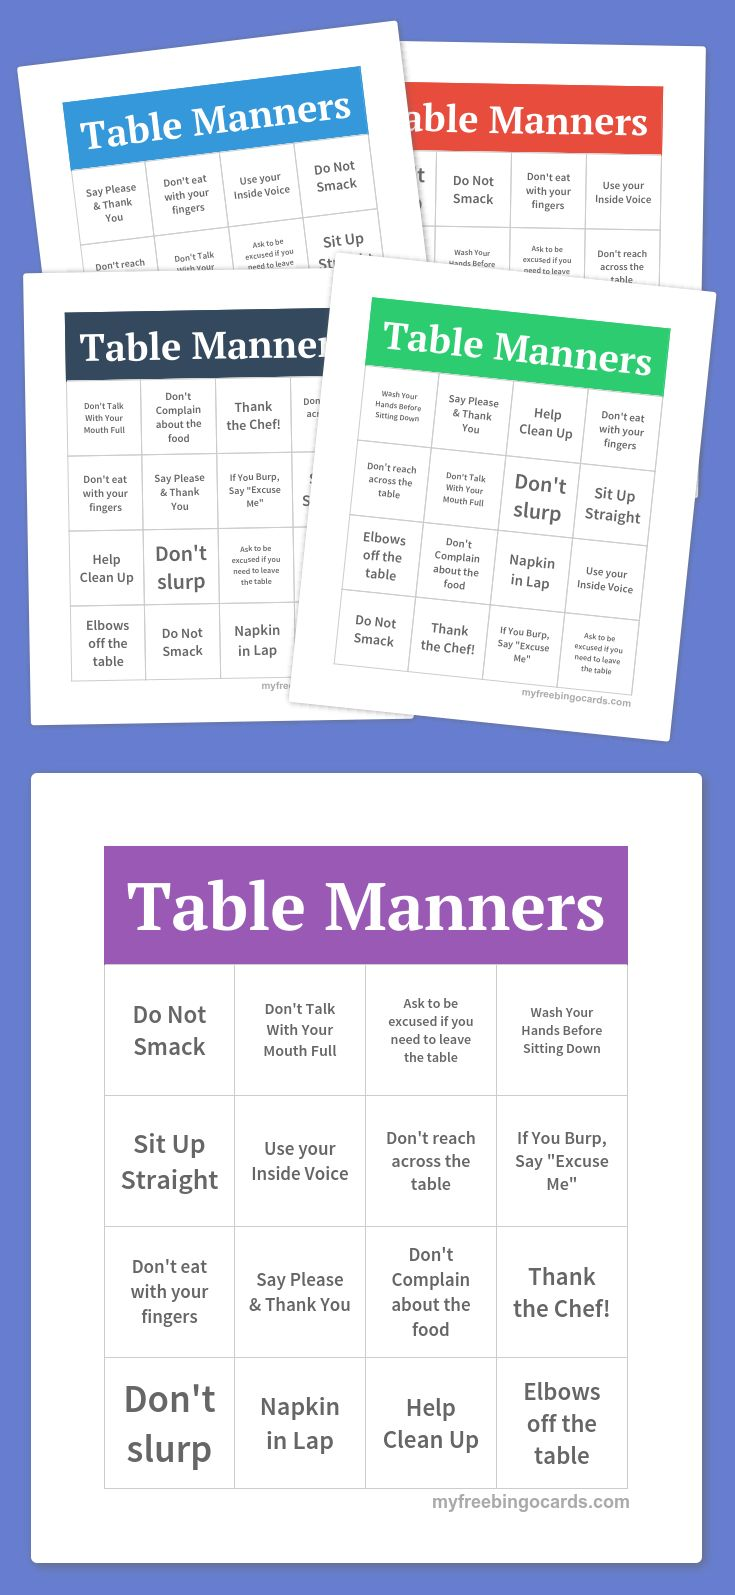 Table manners bingo girl scouts pinterest table for Table etiquette